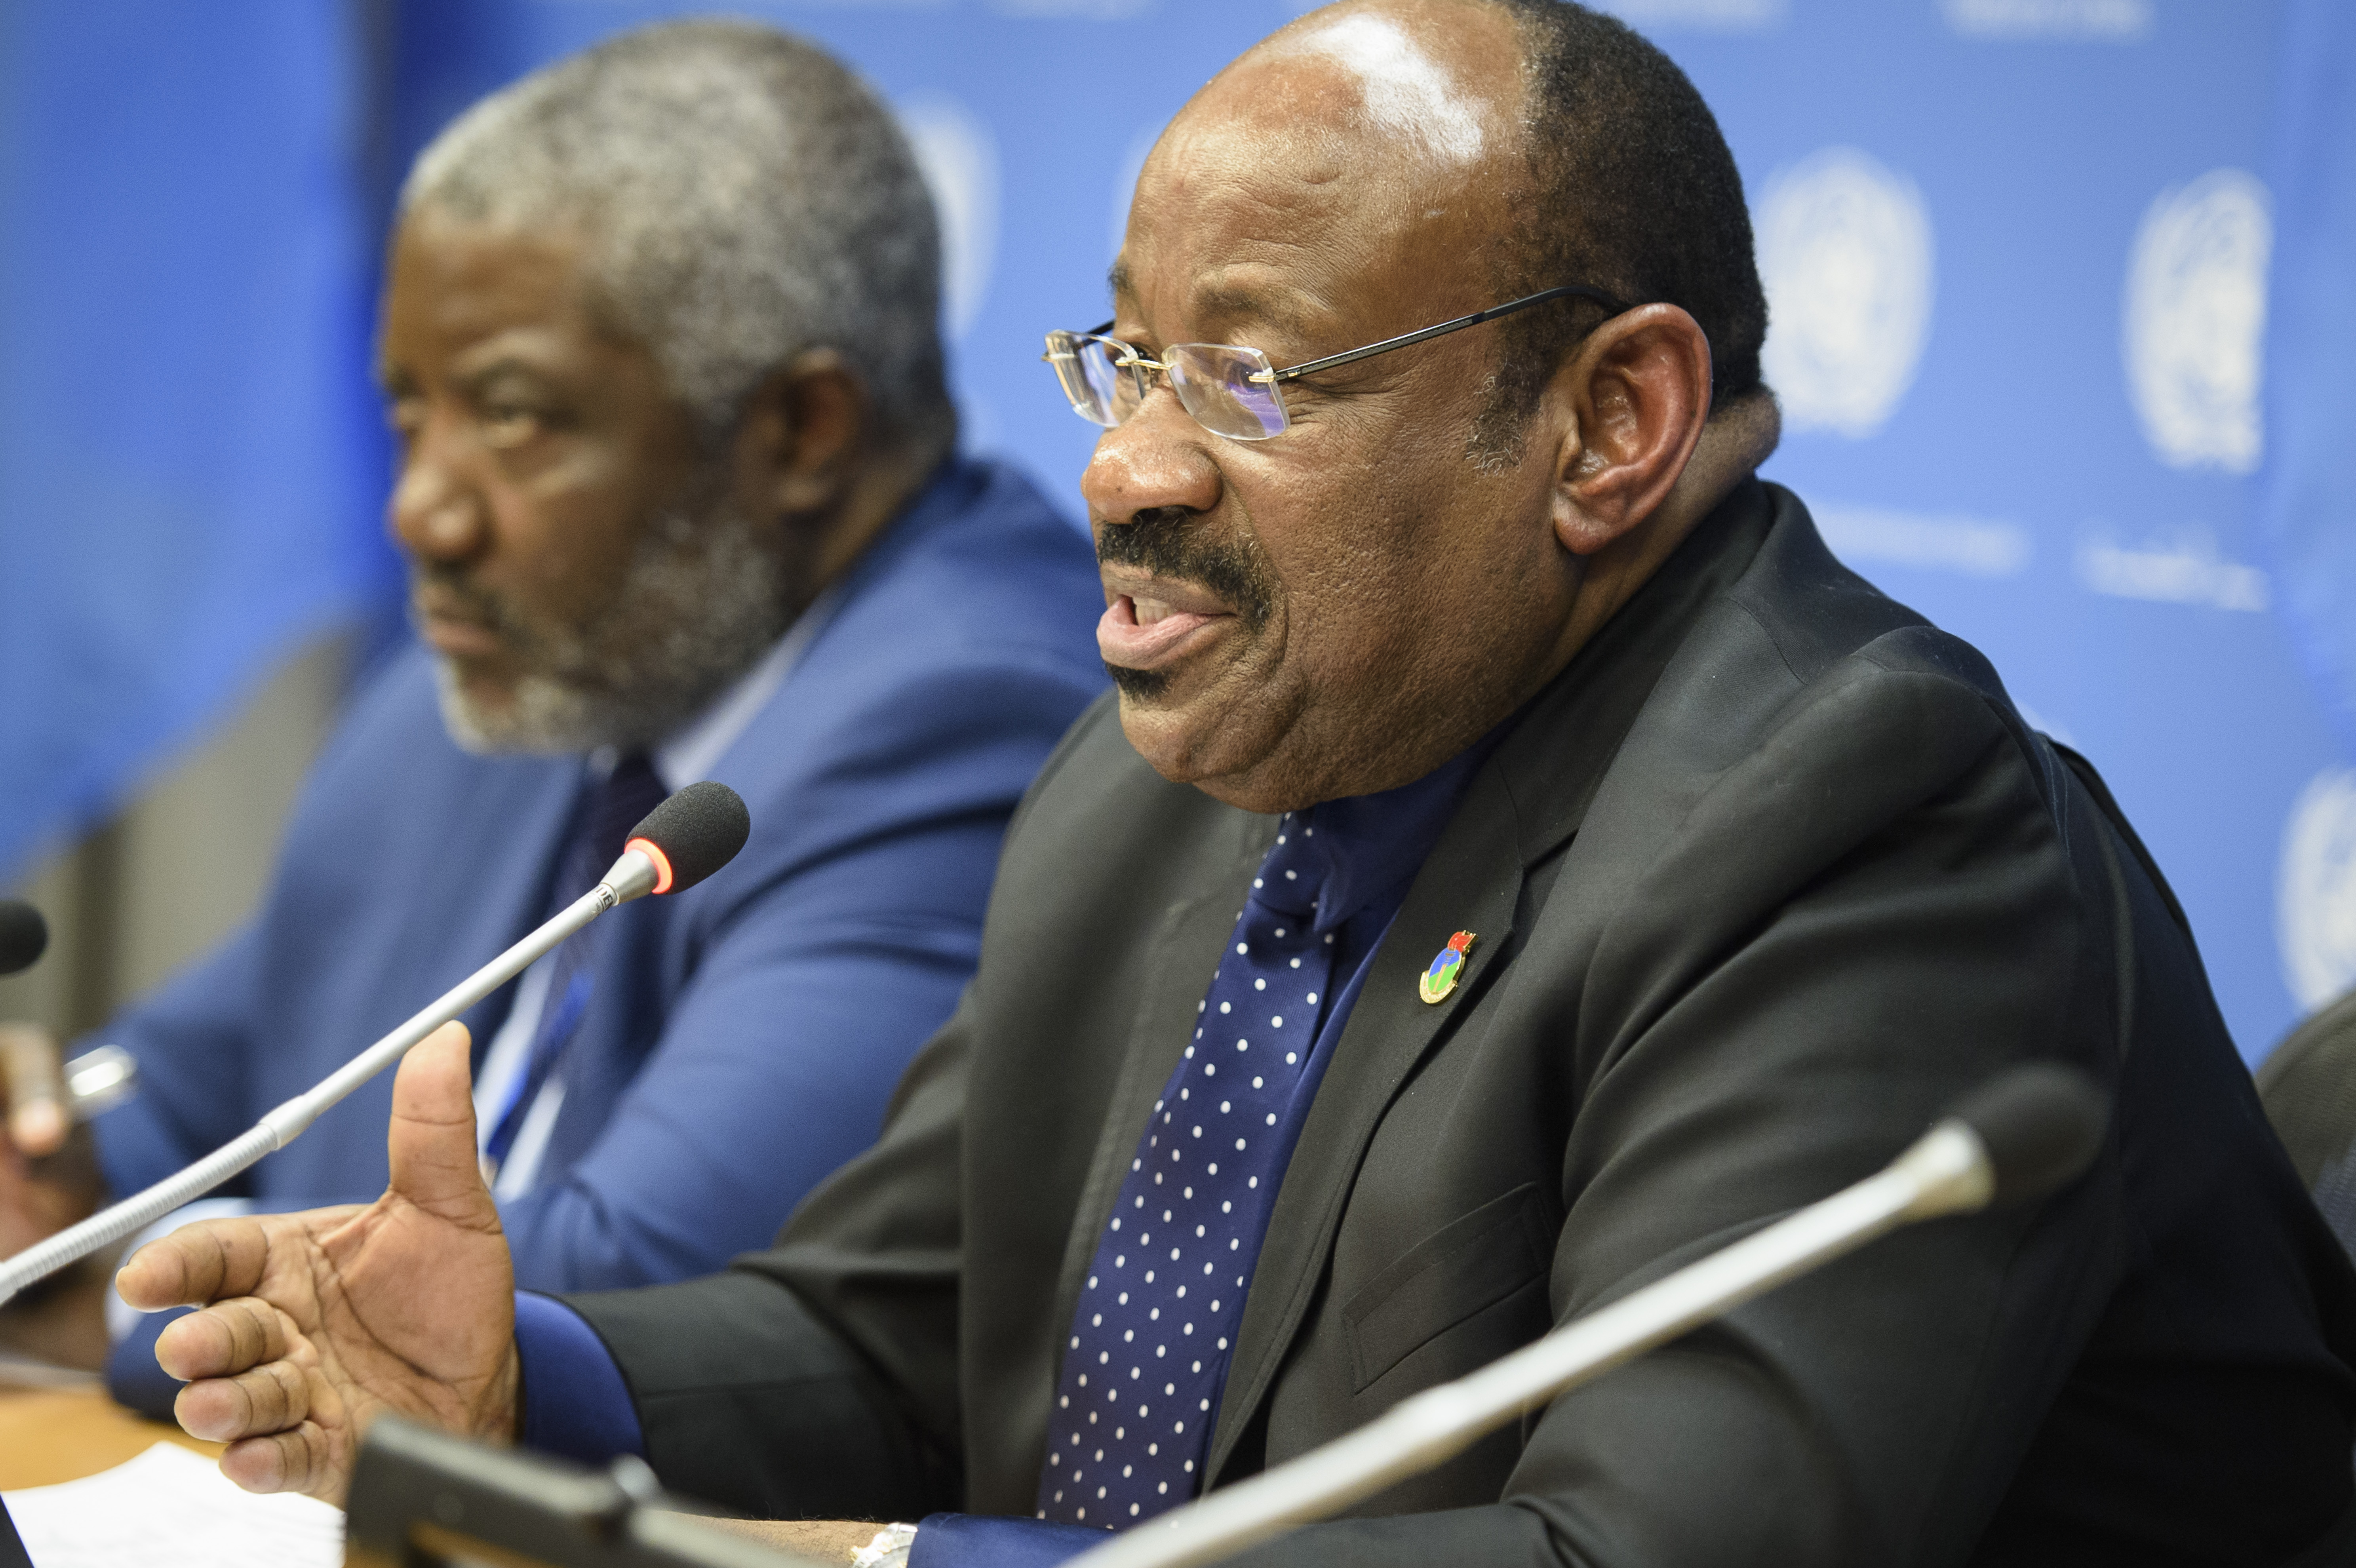 Anatolio Ndong Mba, Permanent Representative of Equatorial Guinea to the United Nations and President of the Security Council for the month of February, briefs press on the Council's programme of work for the month.